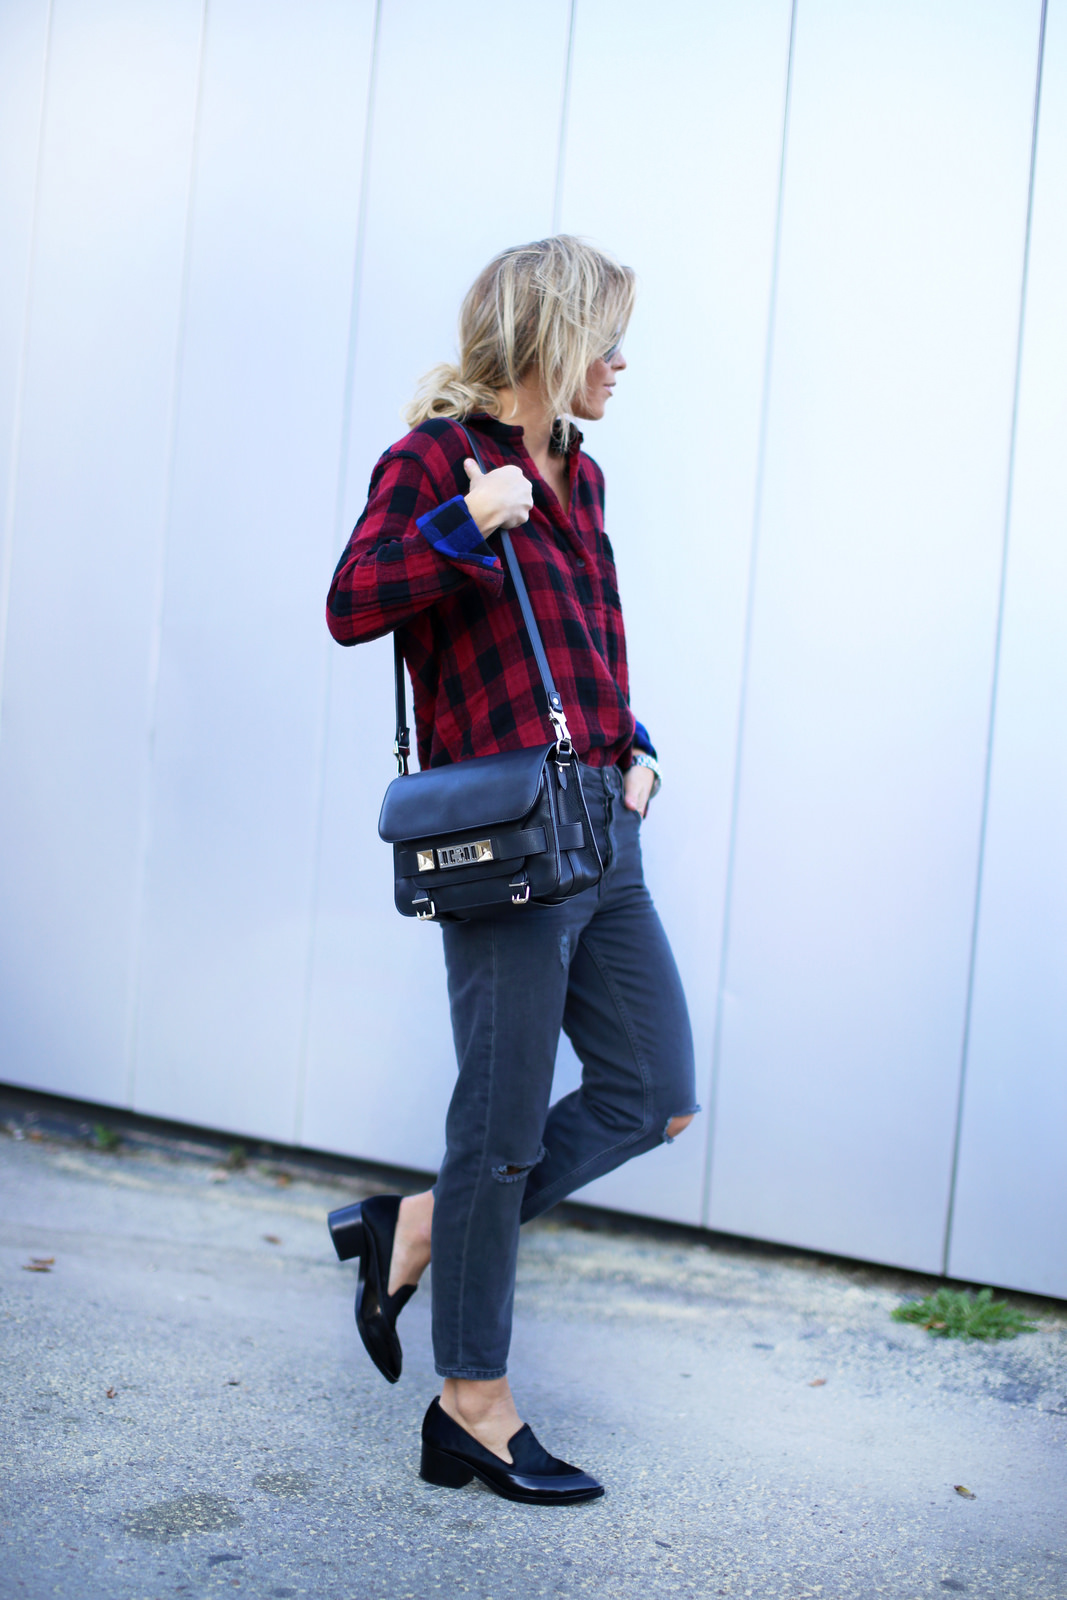 Mary Seng is wearing a buffalo plaid shirt from Rag & Bone